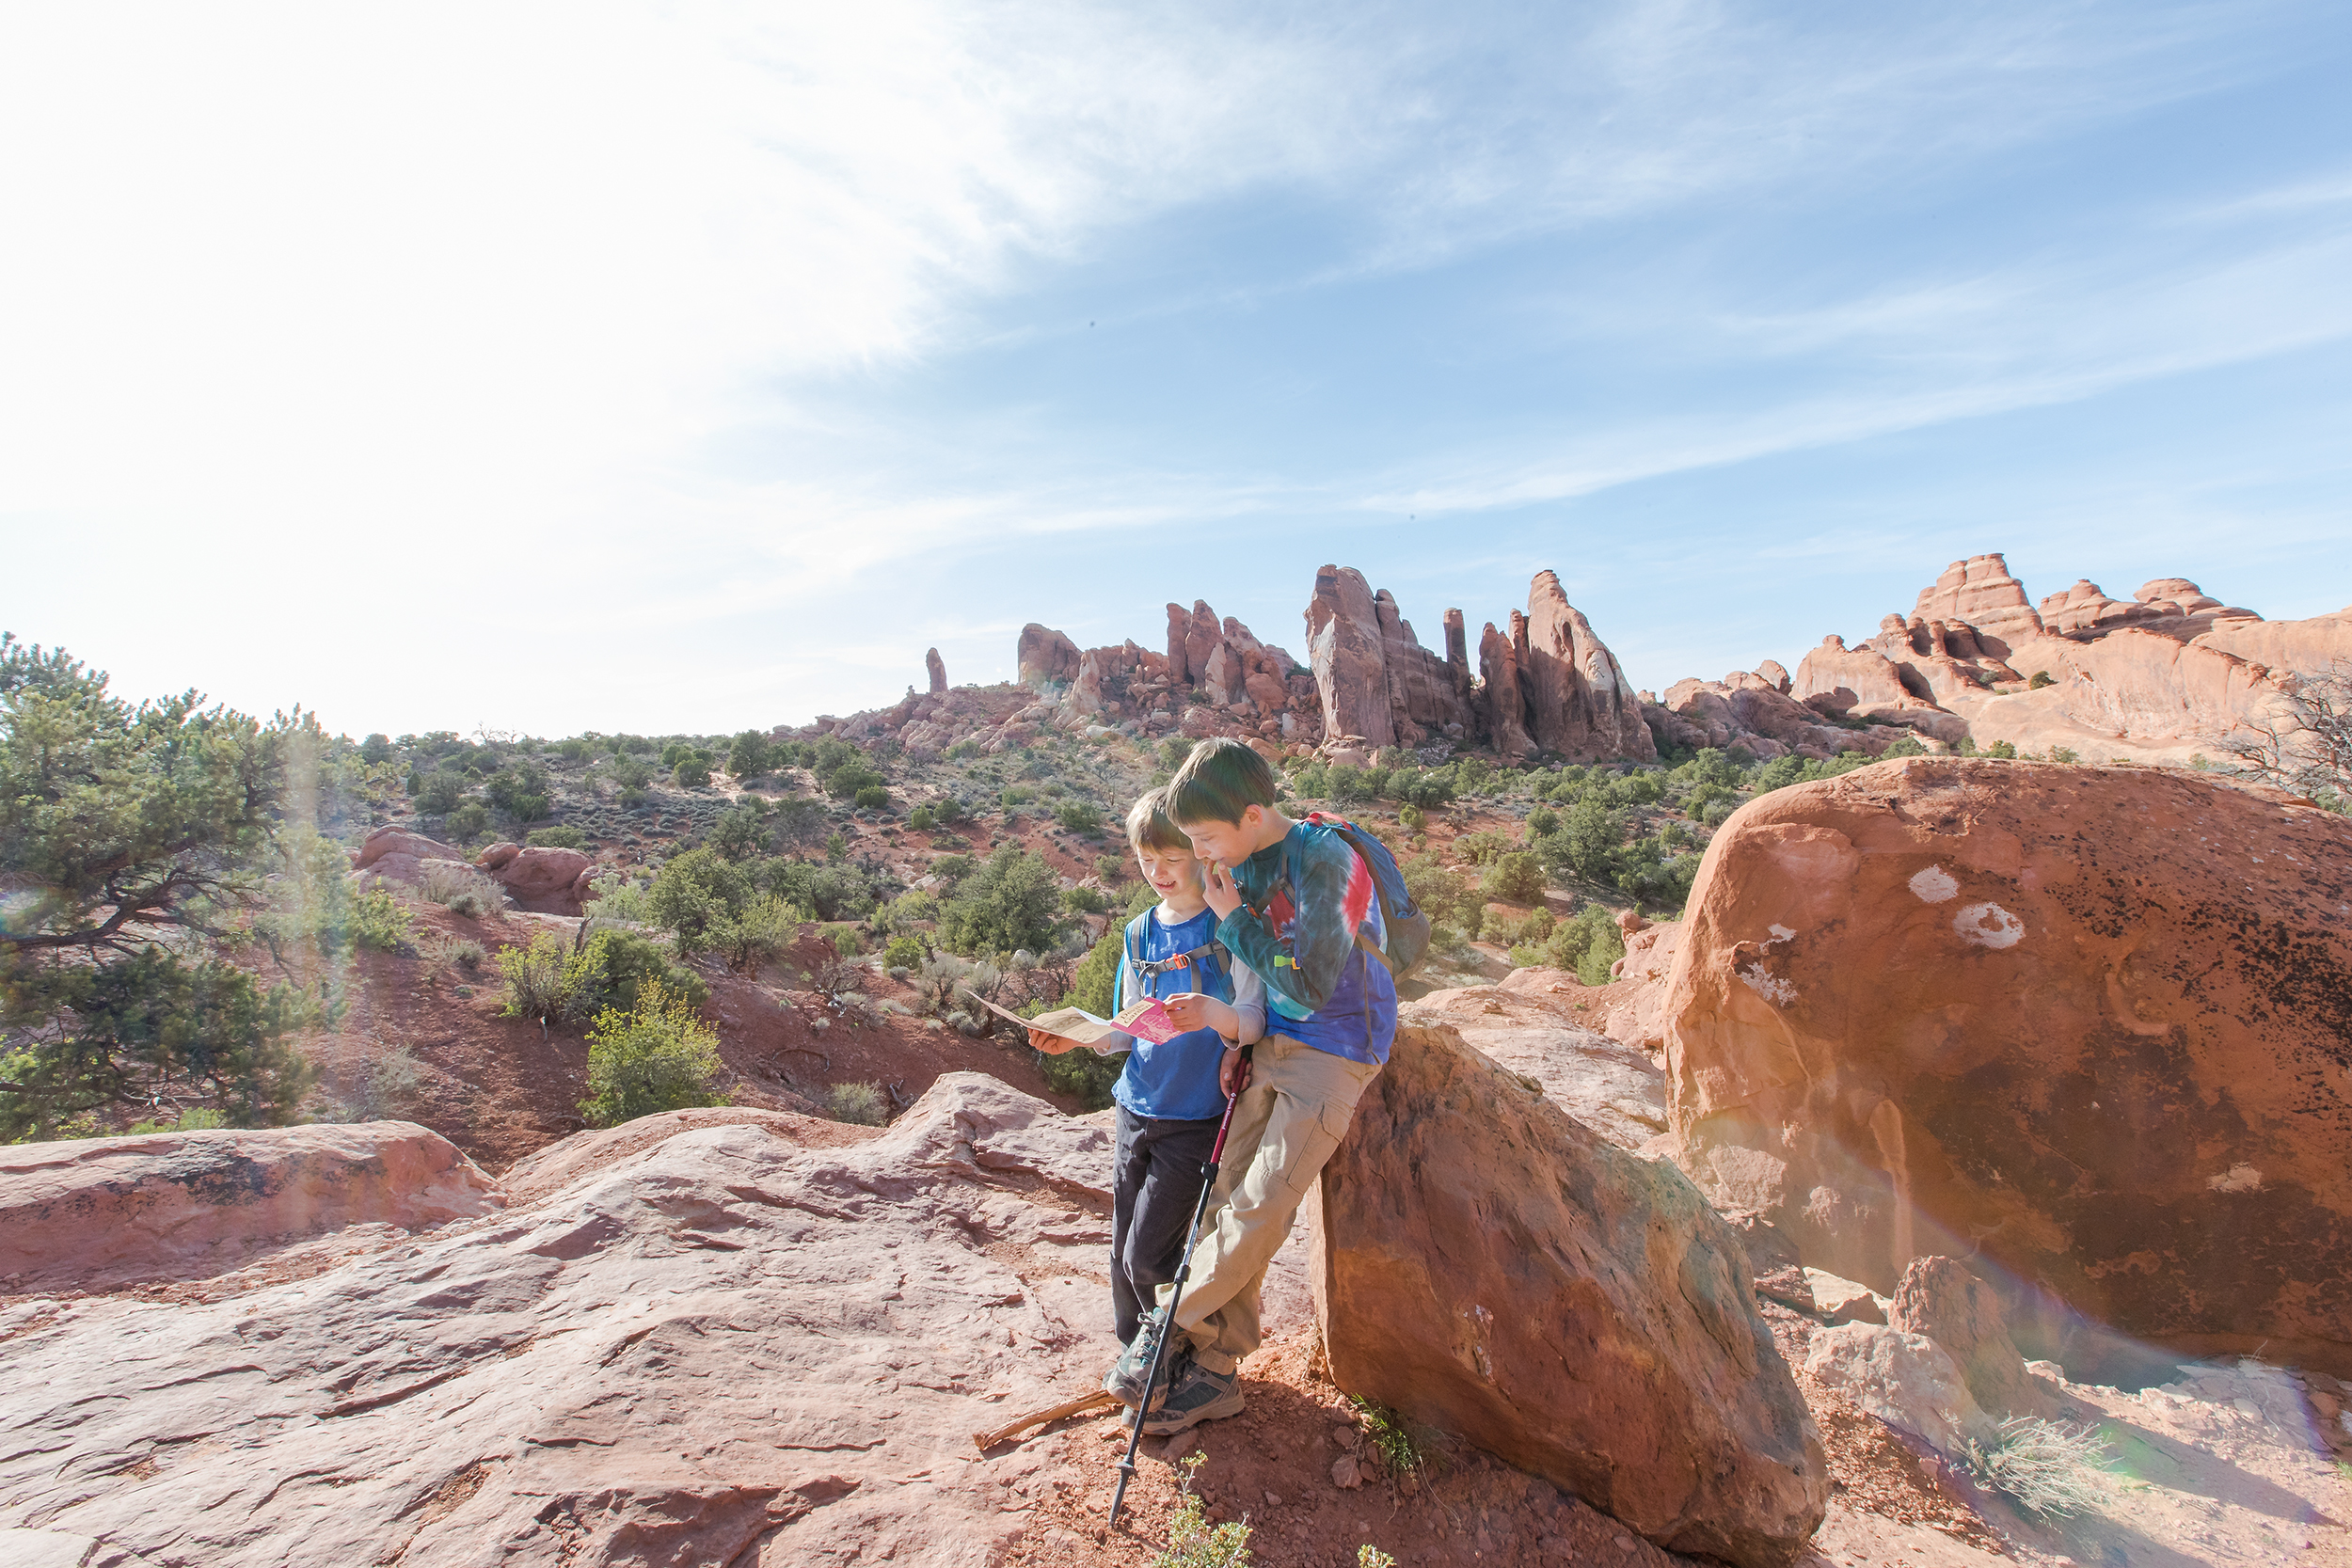 NATLPARKING_adventure_family_hike_utah_arches_boyhood_devilsgarden_1146_WB